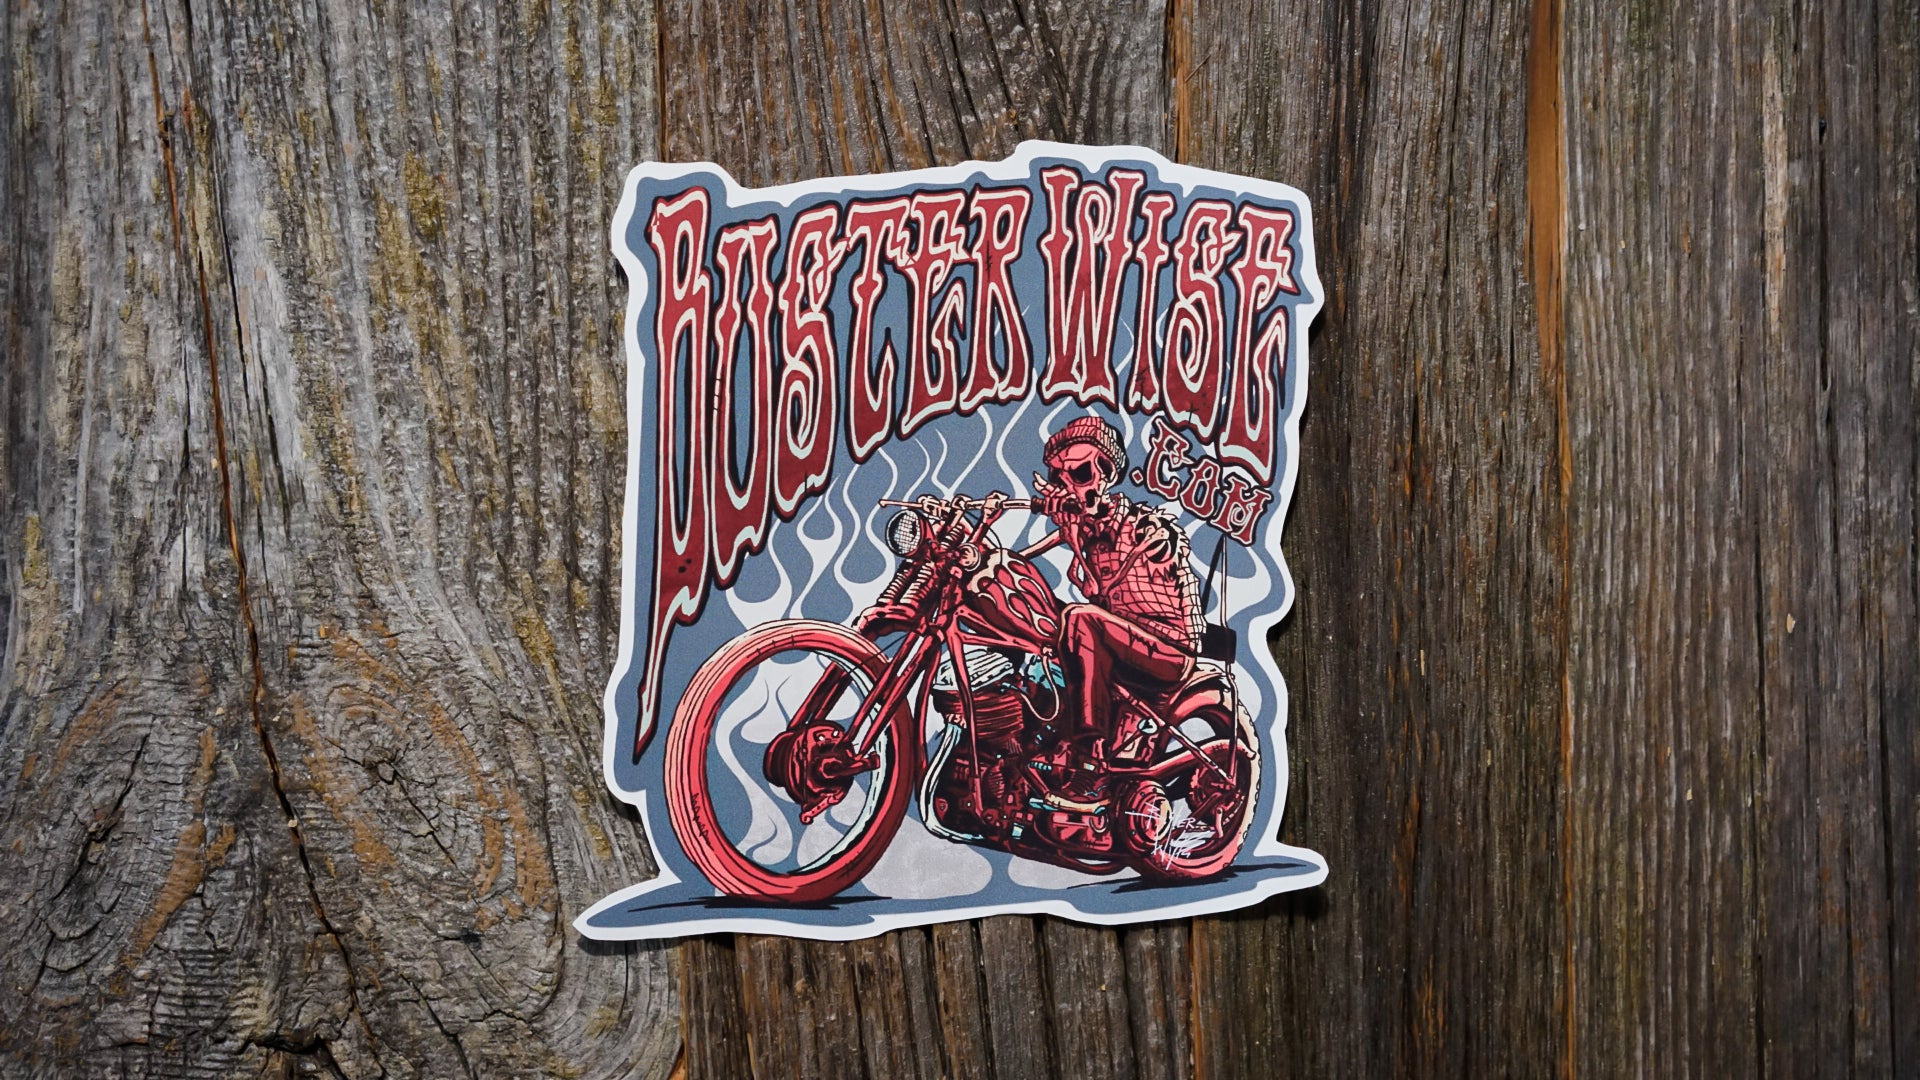 Buster Wise Sticker